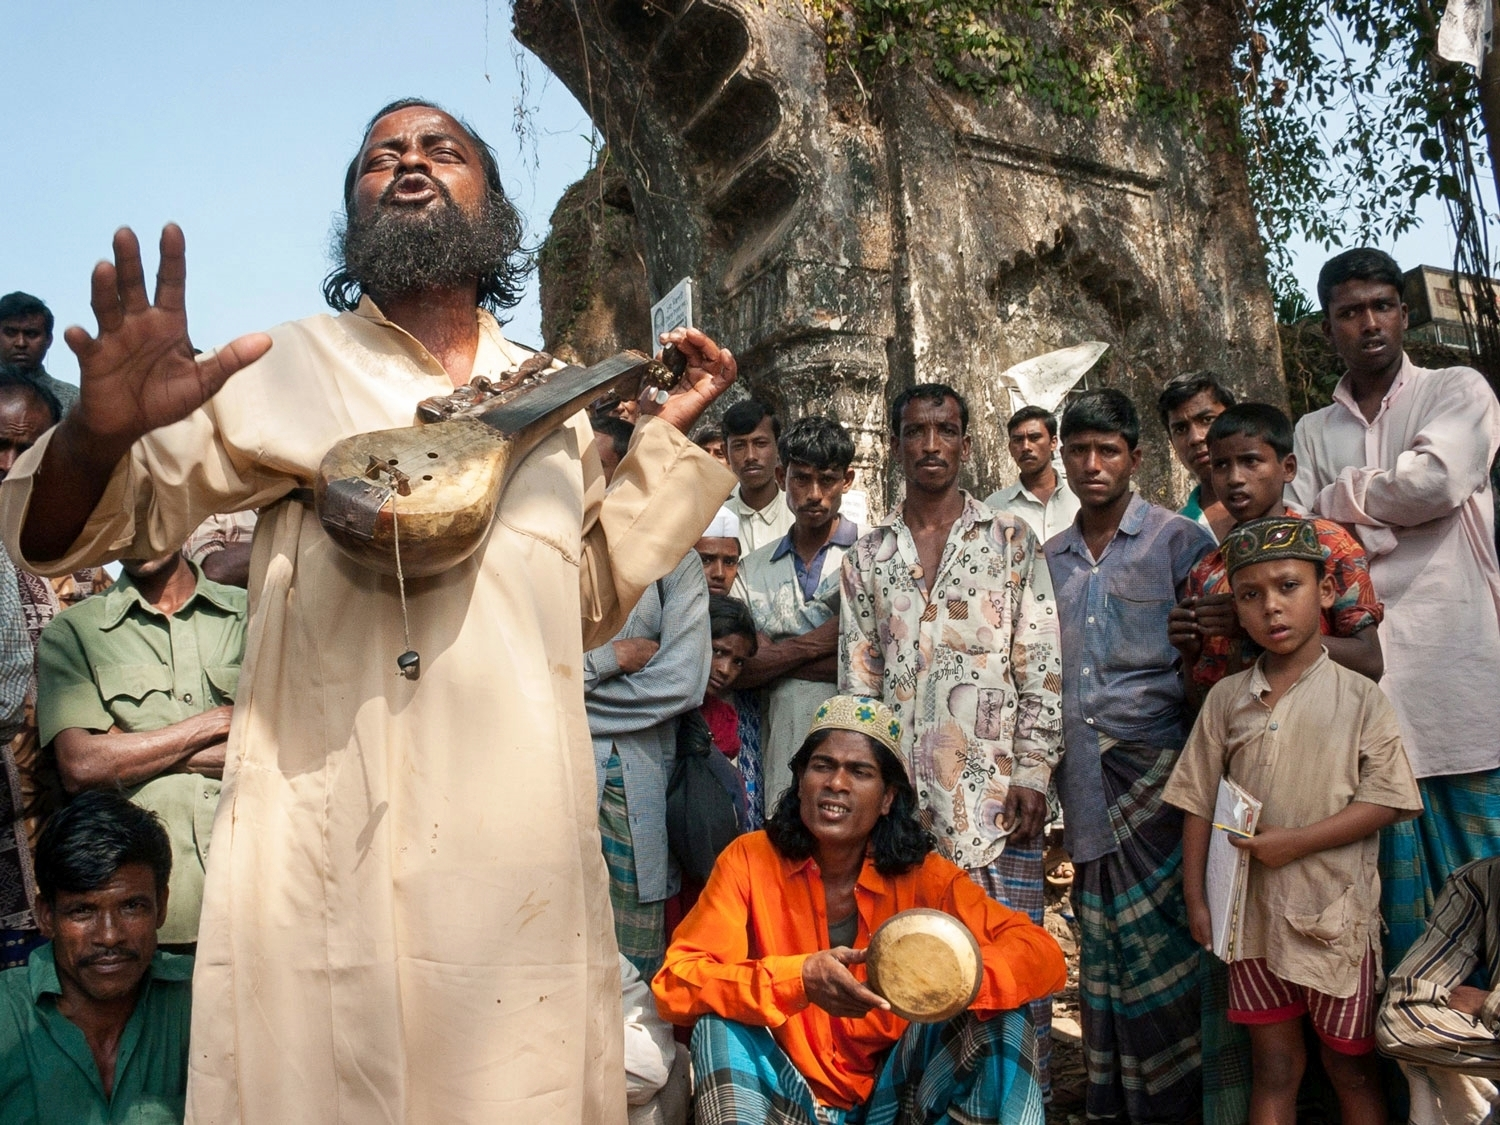 A Baul singer draws a crowd; Sylhet, Bangladesh